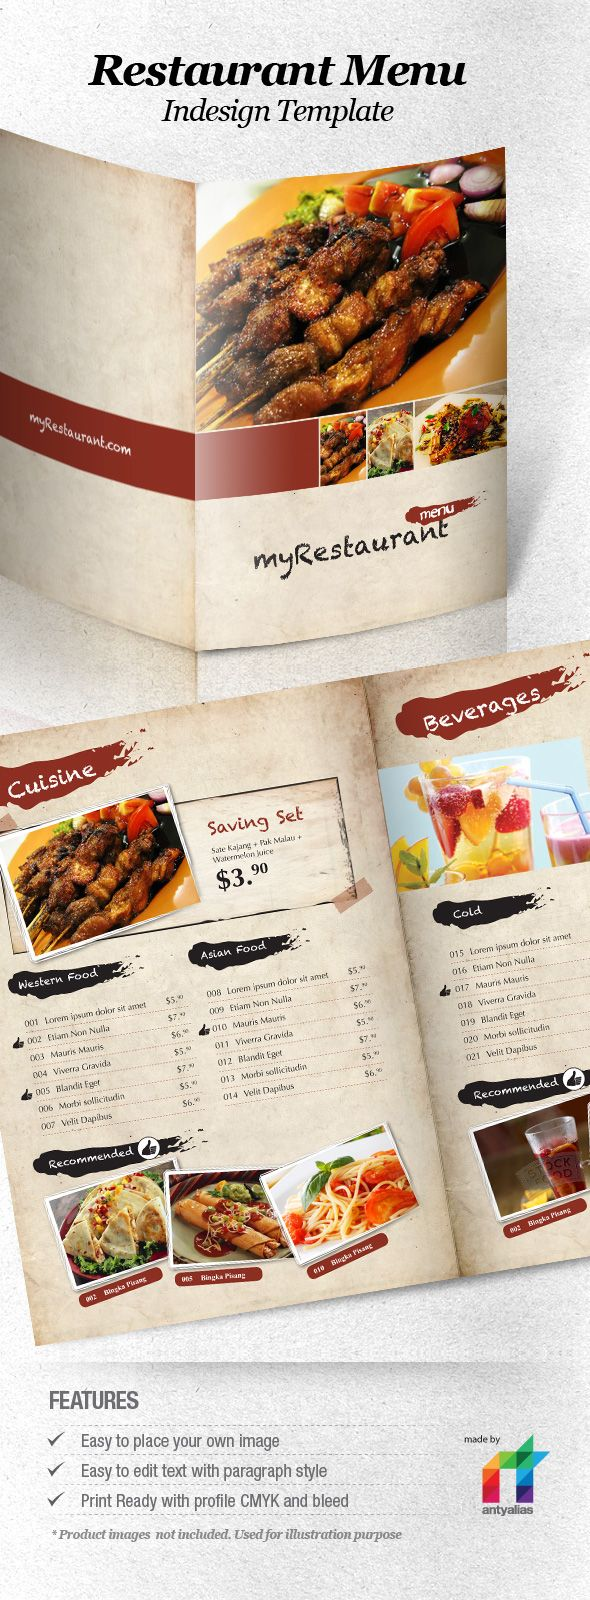 Restaurant logos and names related keywords amp suggestions restaurant - This Brochure Suitable For Any Restaurant Business That Related To Keyword Restaurant Menu Restaurant Menu Templates Restaurant Menu Design Restauran